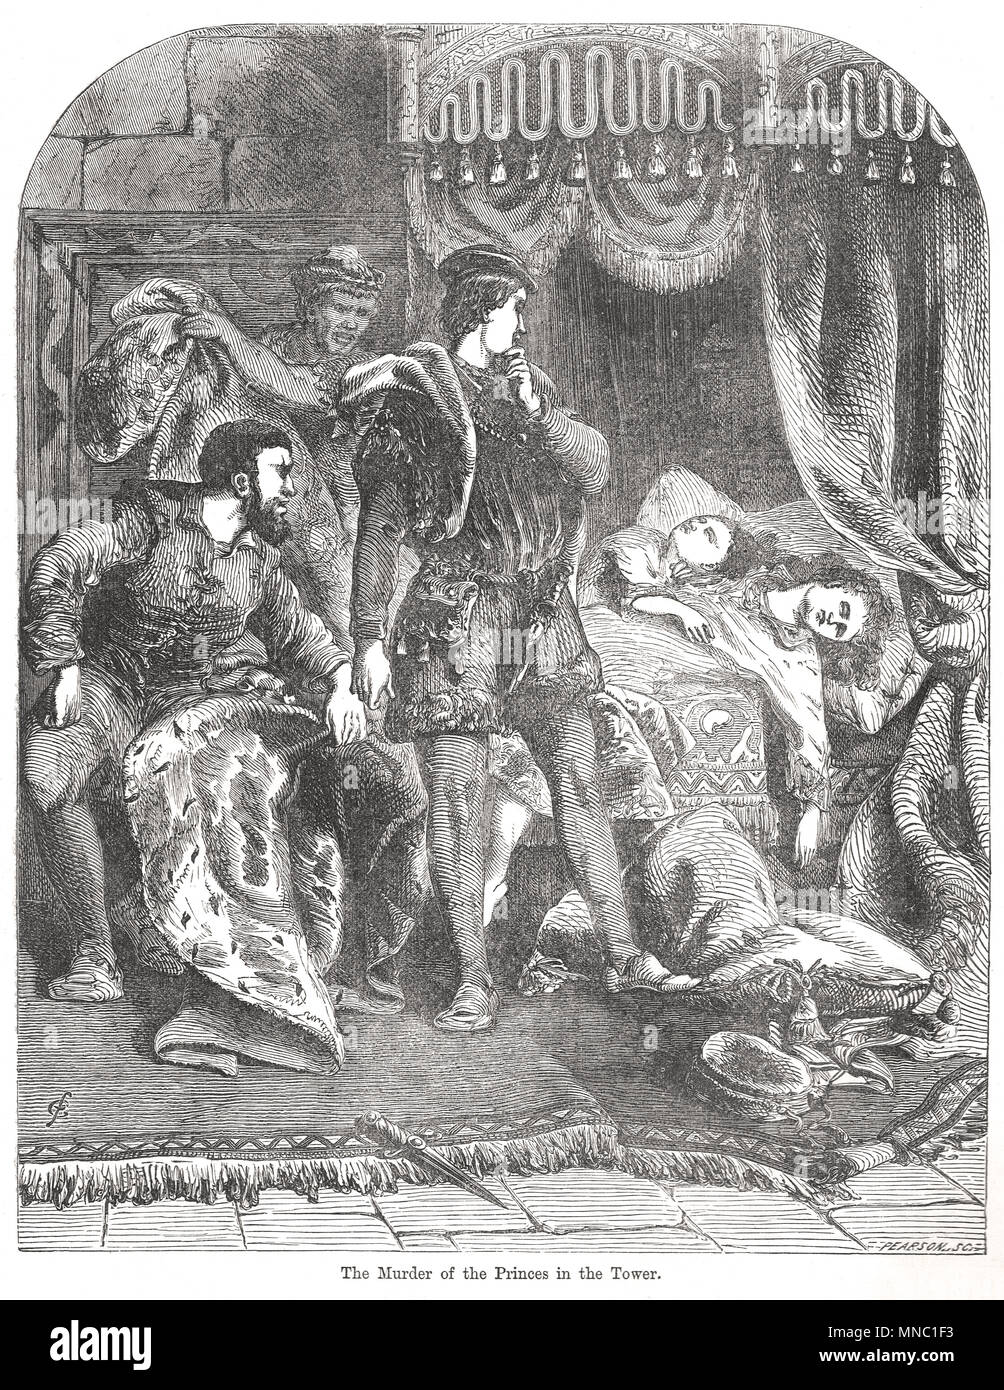 Death of the two princes, Tower of London, 1483. The Princes in the Tower - Stock Image